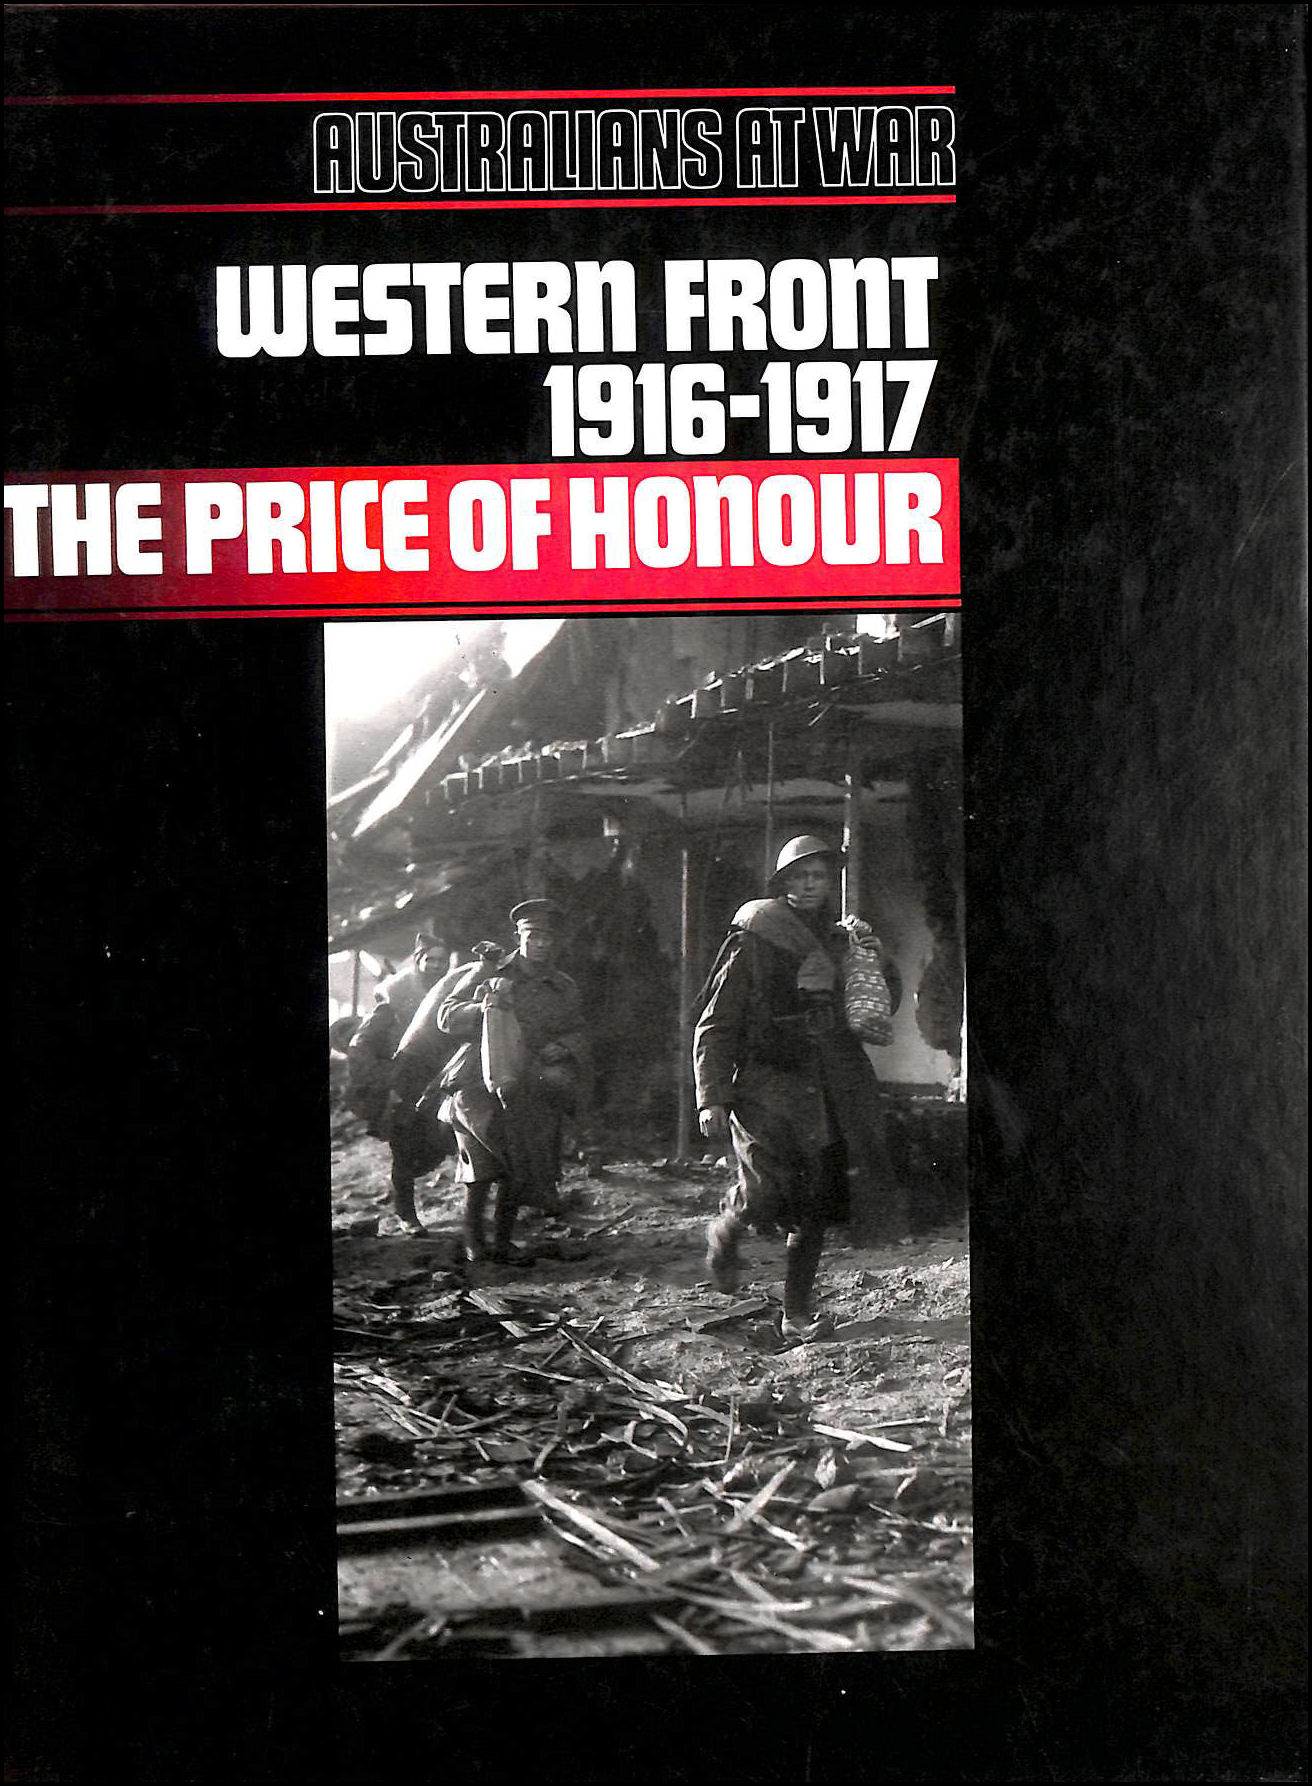 Image for Western Front 1916-17: The Price of Honour (Aust at war)